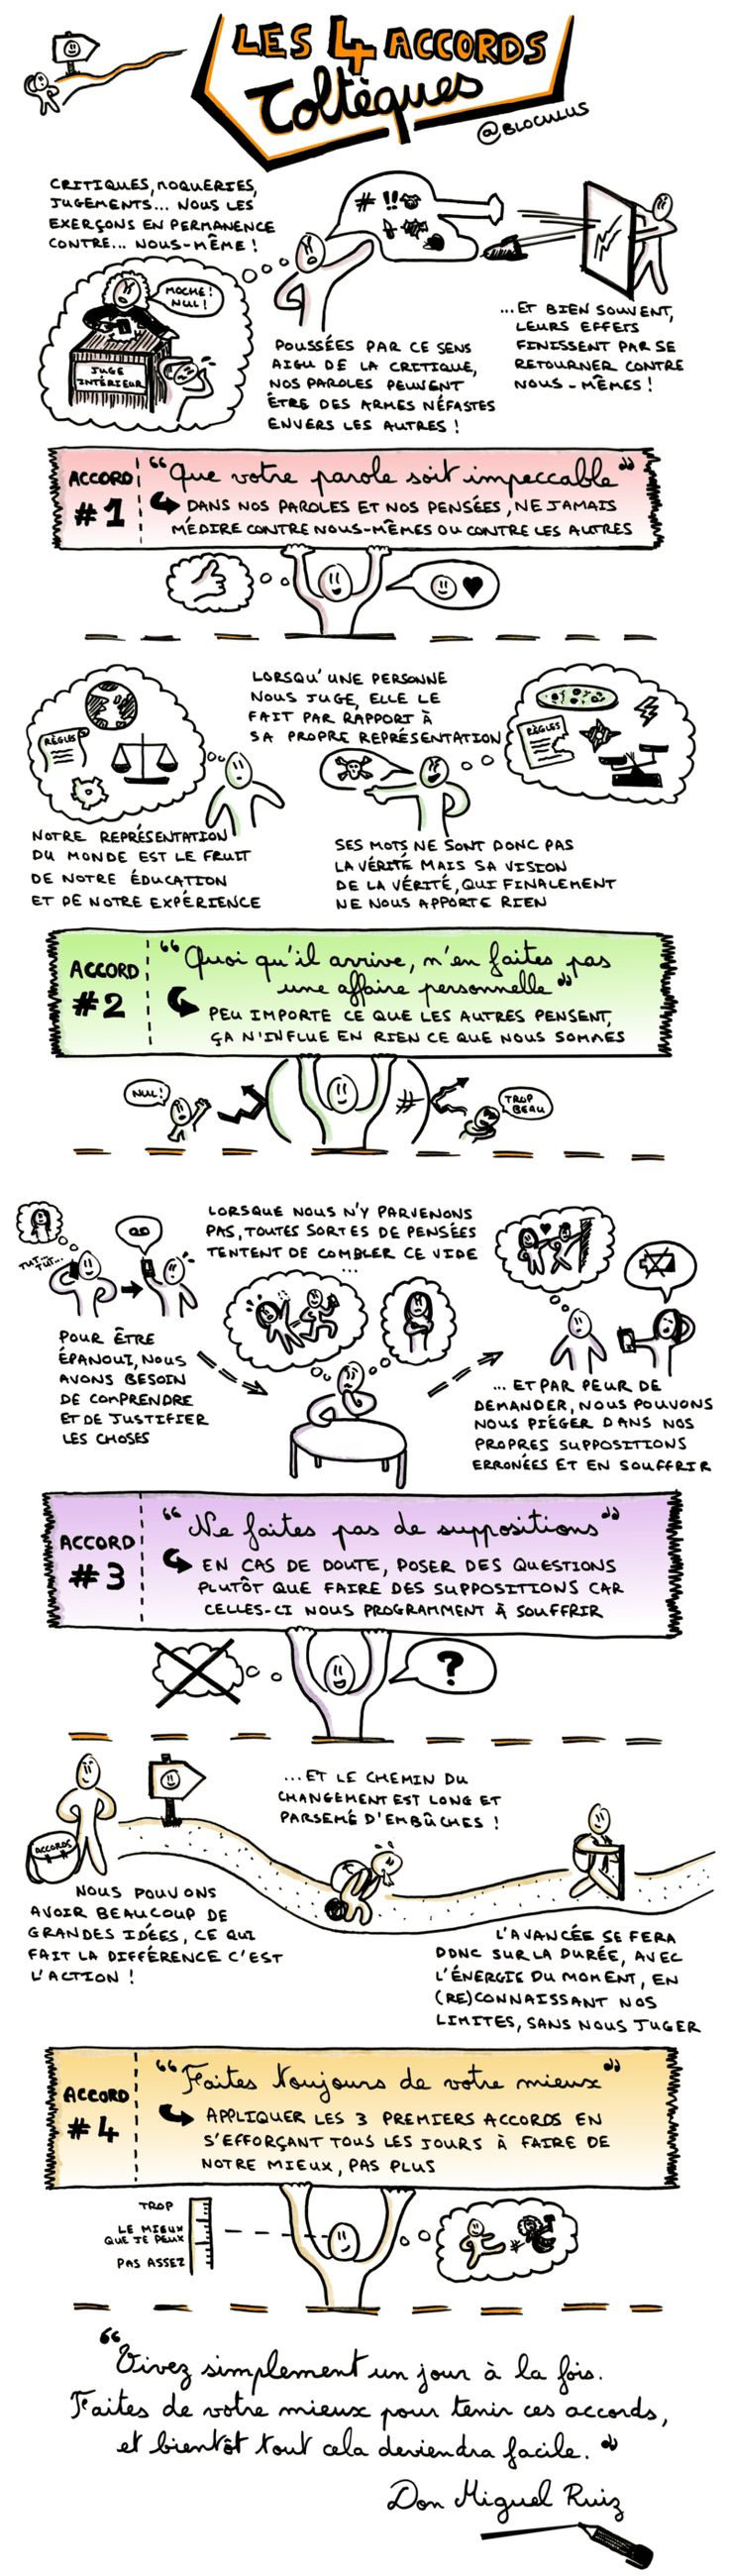 Sketchnote 4 accords Toltèques